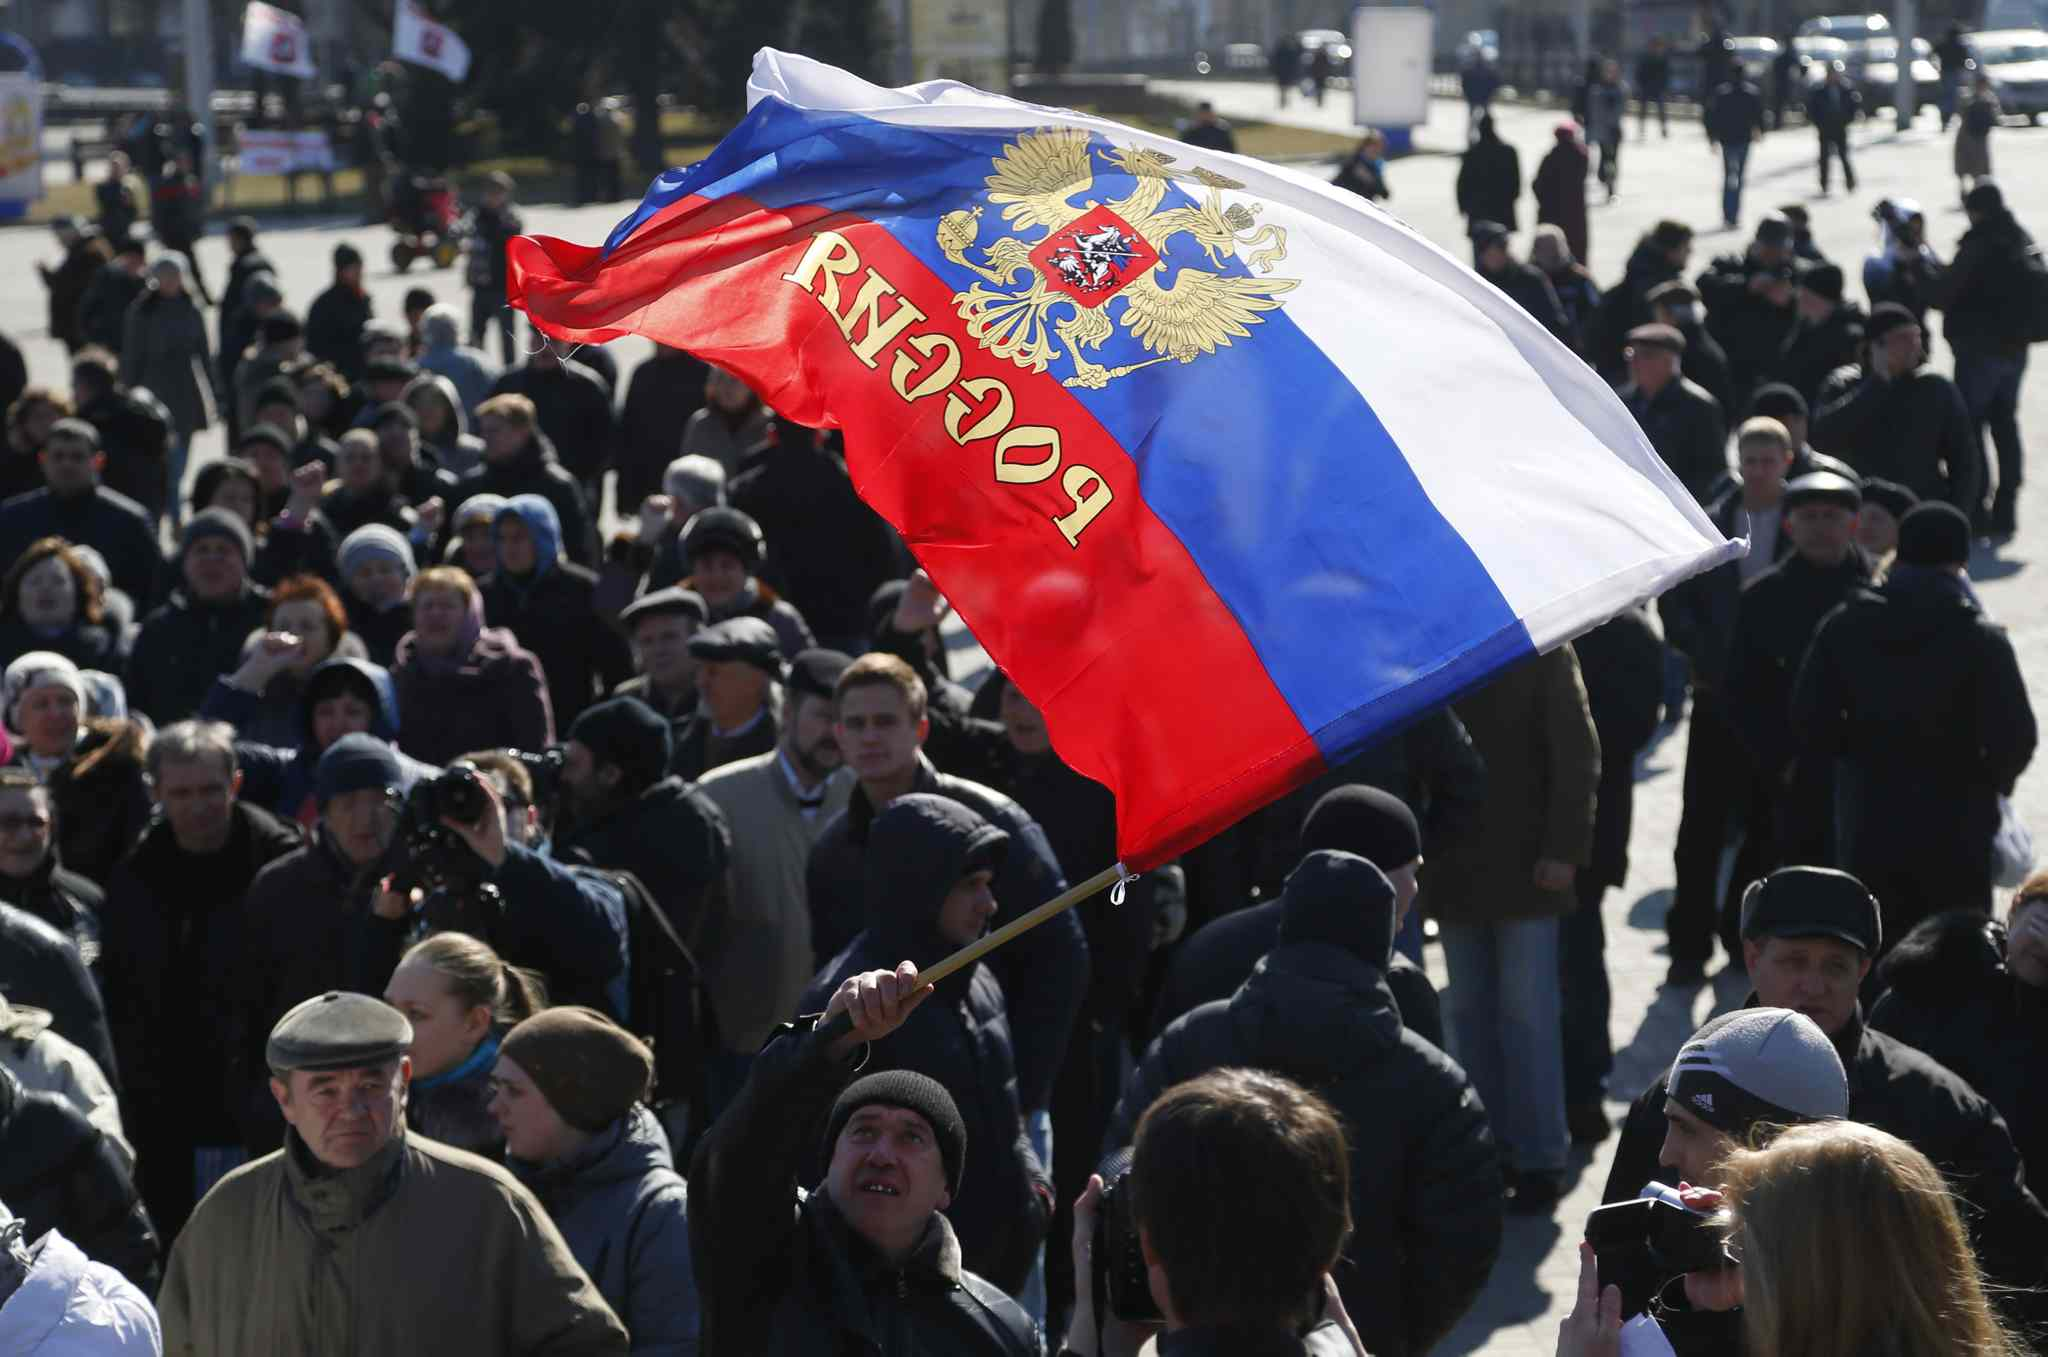 A man waves a Russian flag during a pro Russian rally at a central square in Donetsk, eastern Ukraine, Monday. Many Russian-speakers in the region continue to protest against the new Ukrainian government following the overthrow of pro-Kremlin President Viktor Yanukovych.